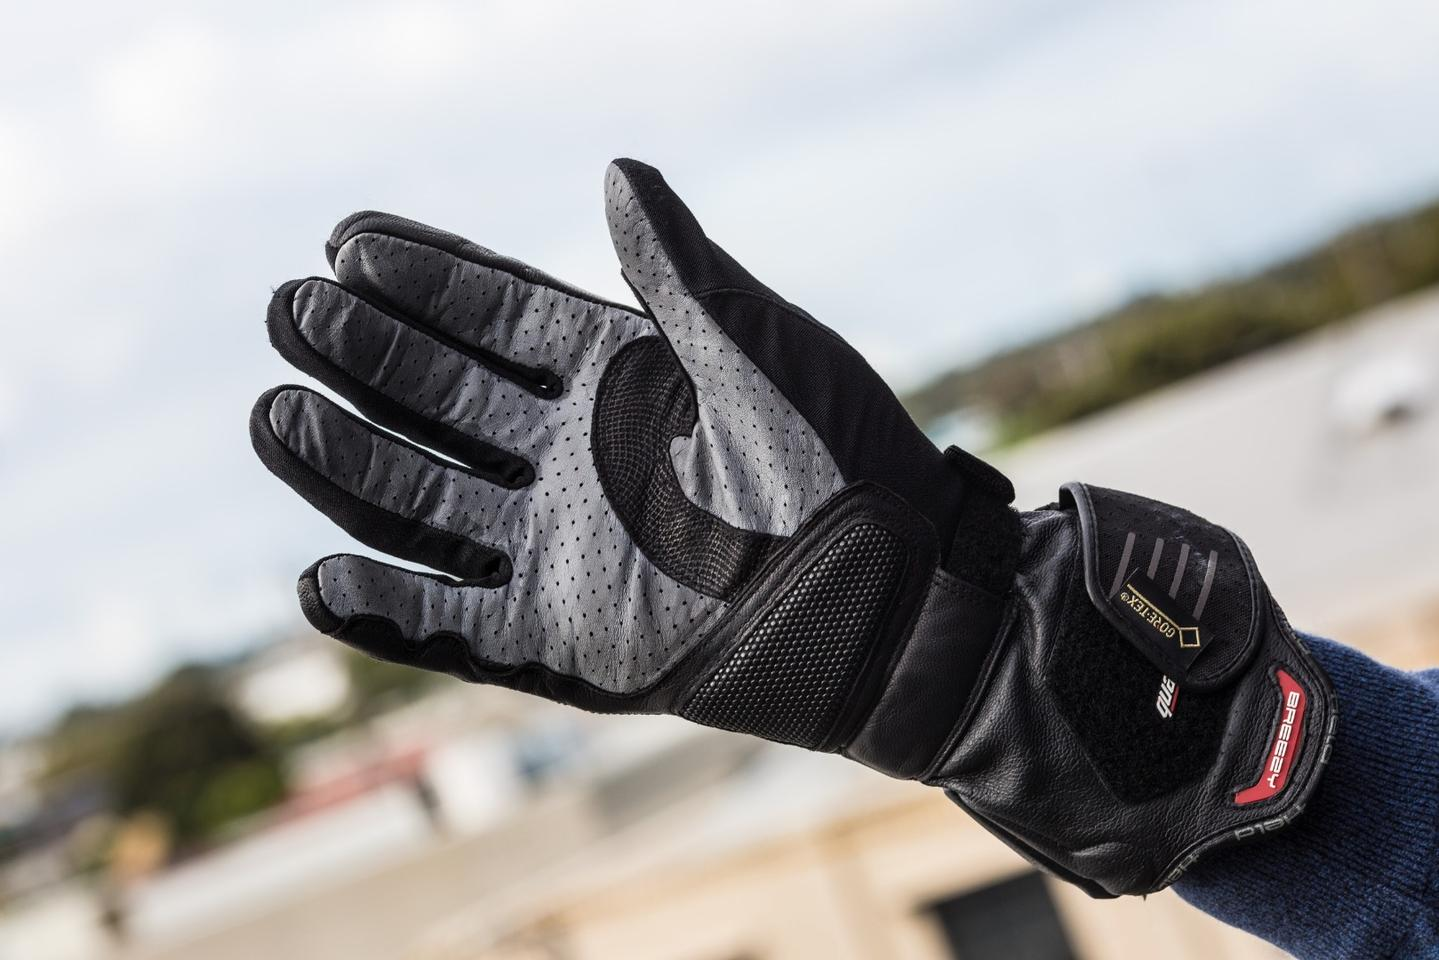 Held Air n Dry: Kangaroo leather palm gives excellent feel and perforated breathability